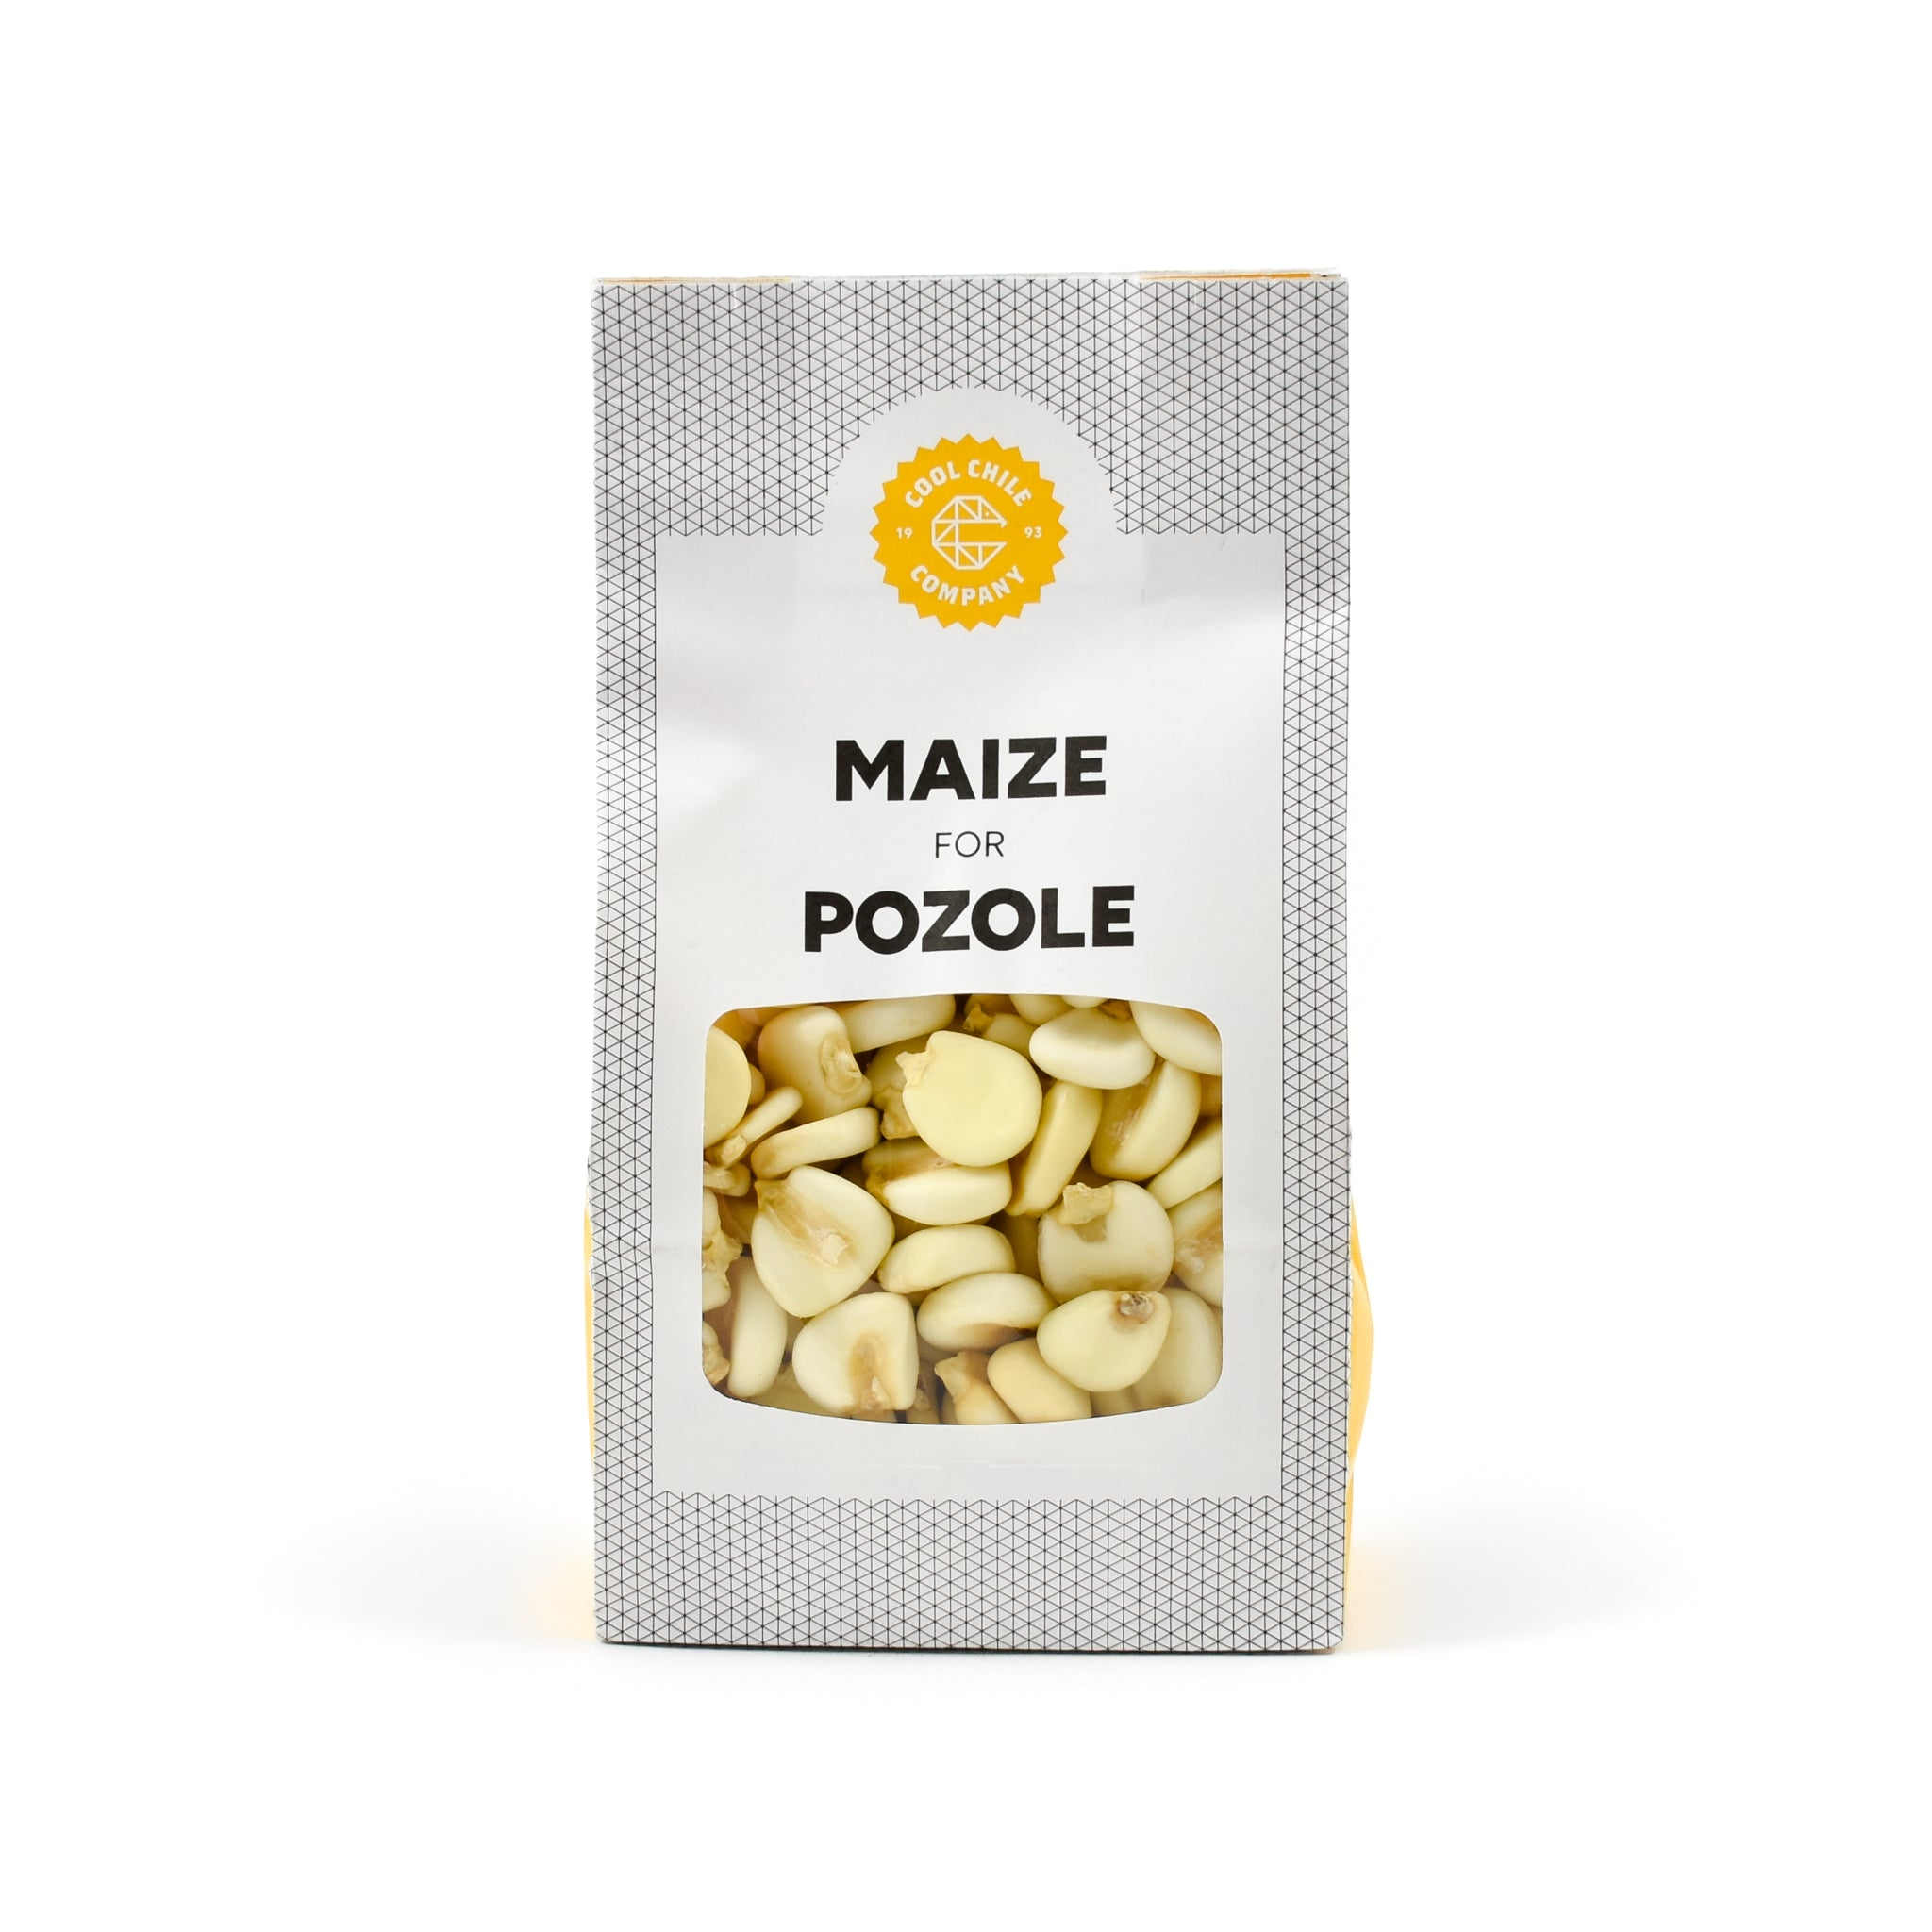 Cool Chile Co Maize for Pozole 250g Ingredients Flour Grains & Seeds Mexican Food